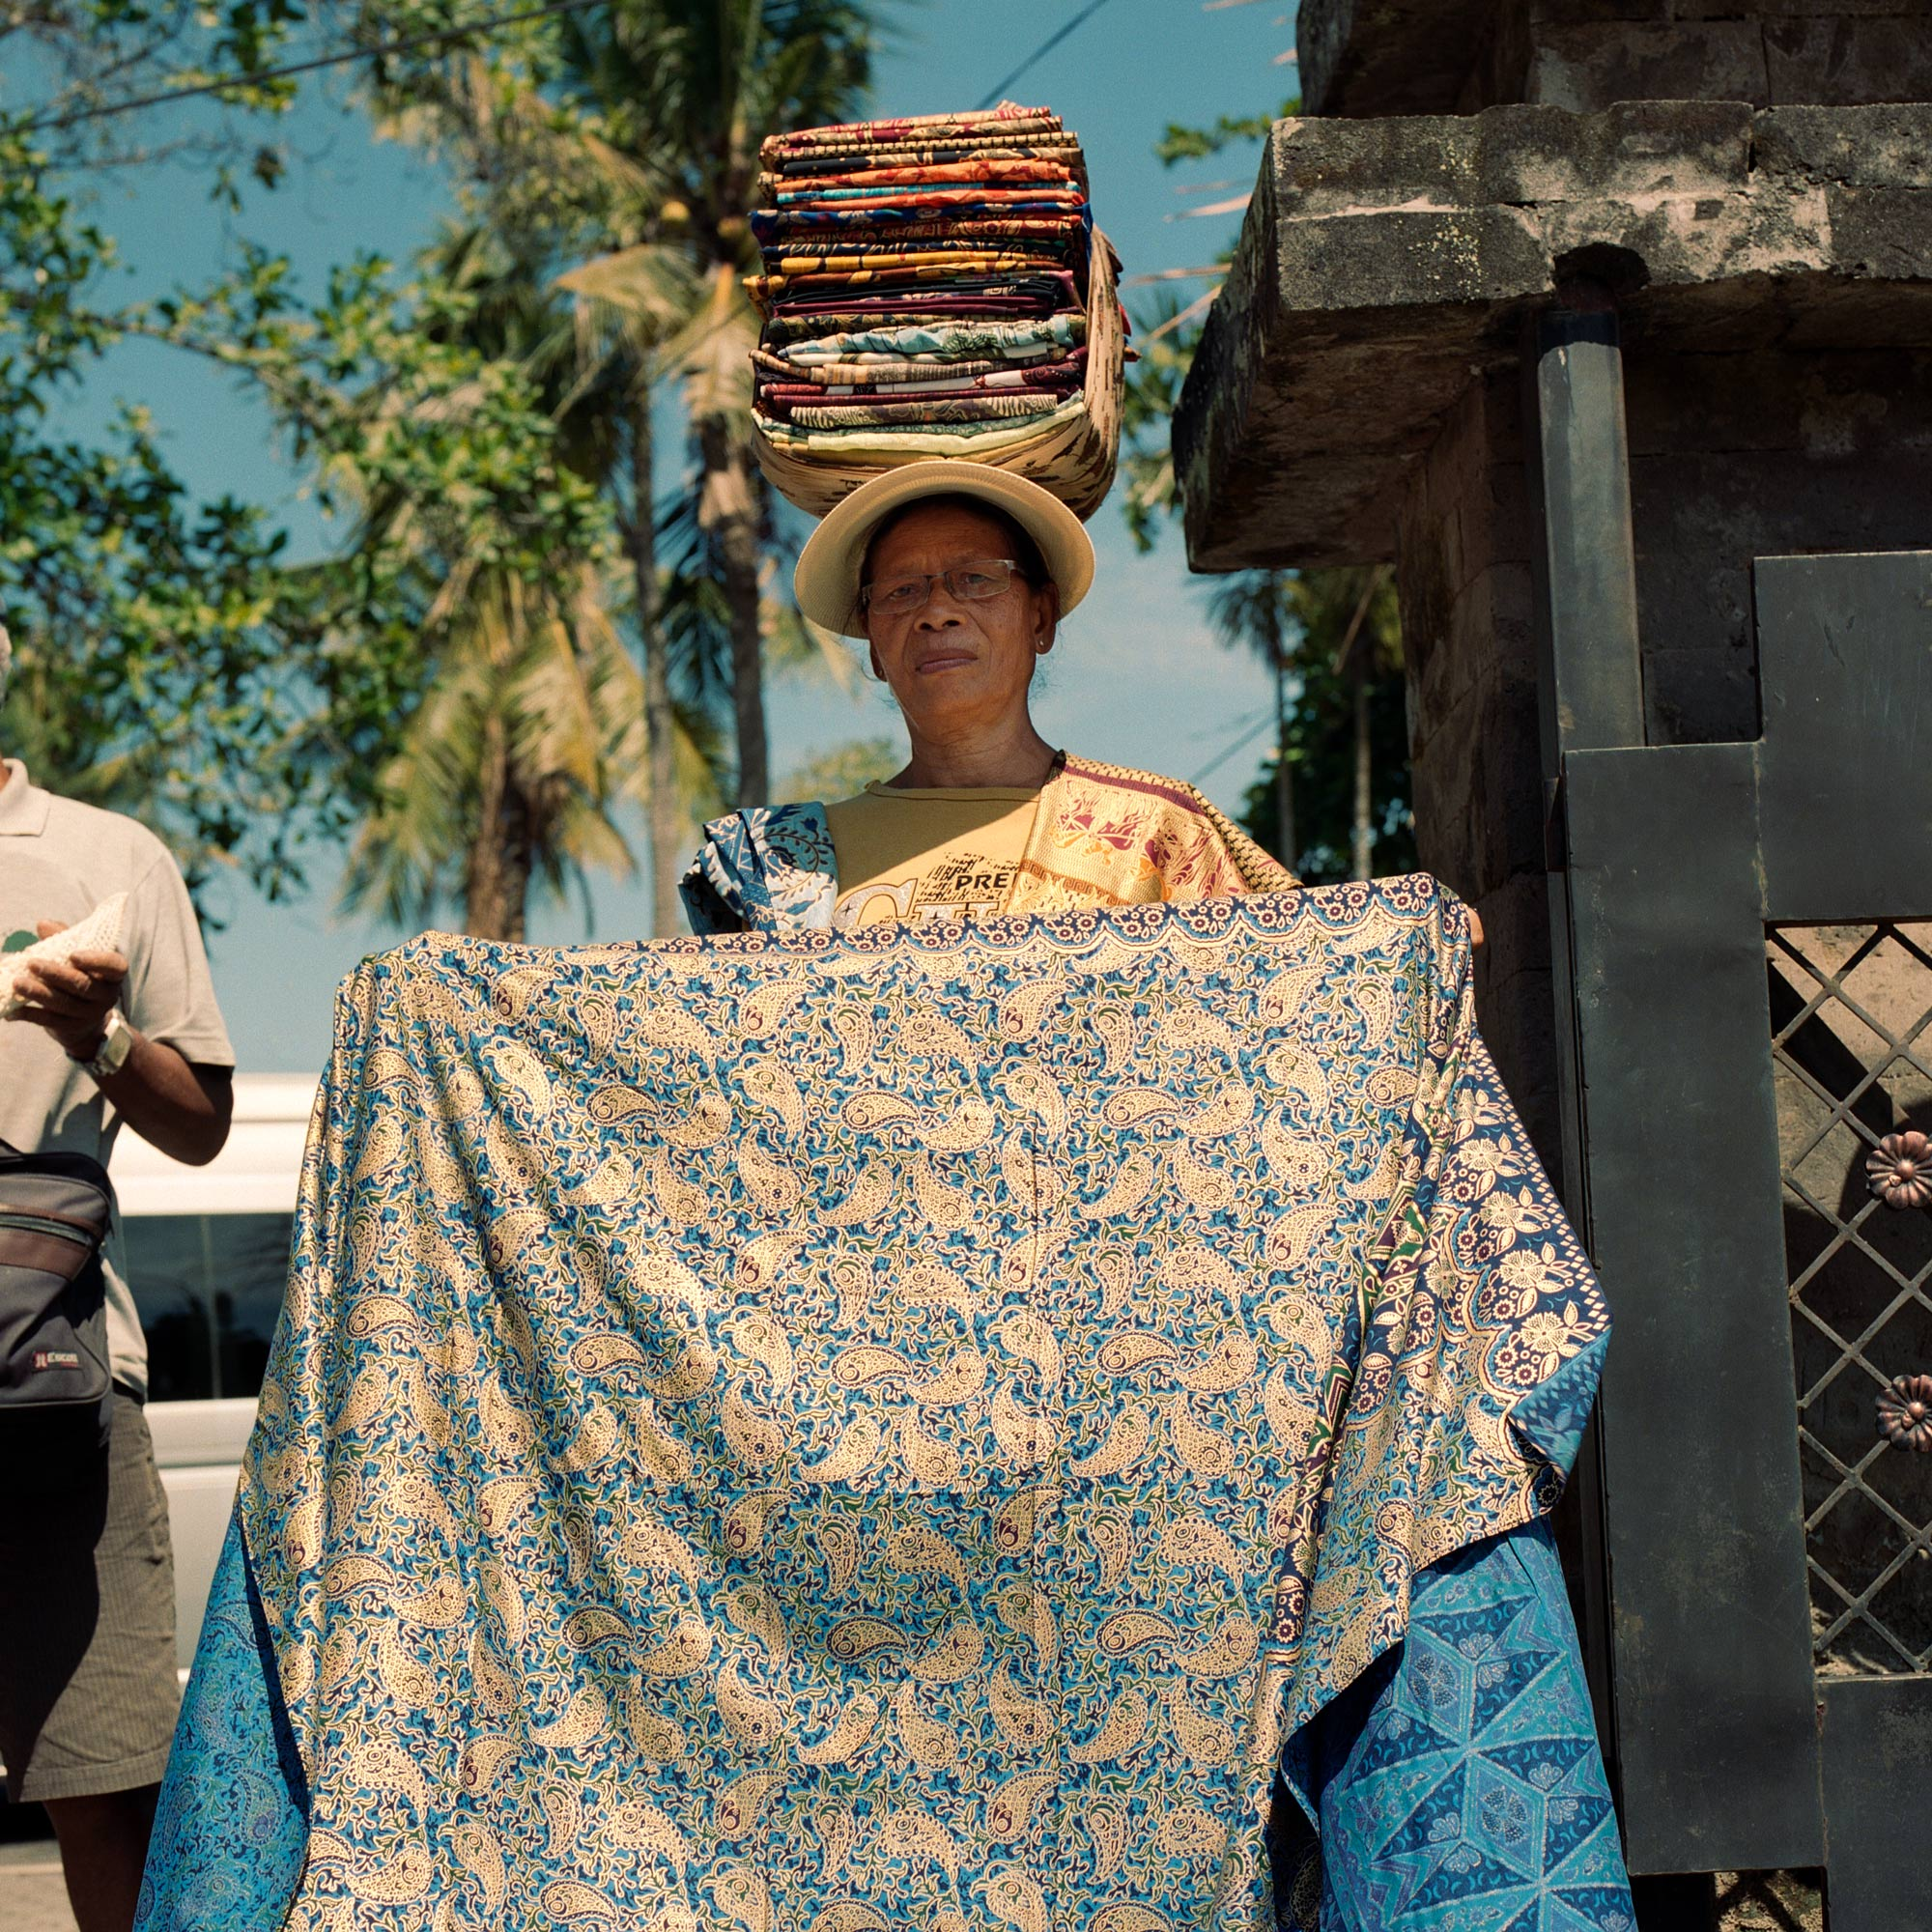 Bali Woman Selling Batik Fabrics, Jalan Raya, Ubud, Eastern Travels, Photography by Ioannis Koussertari